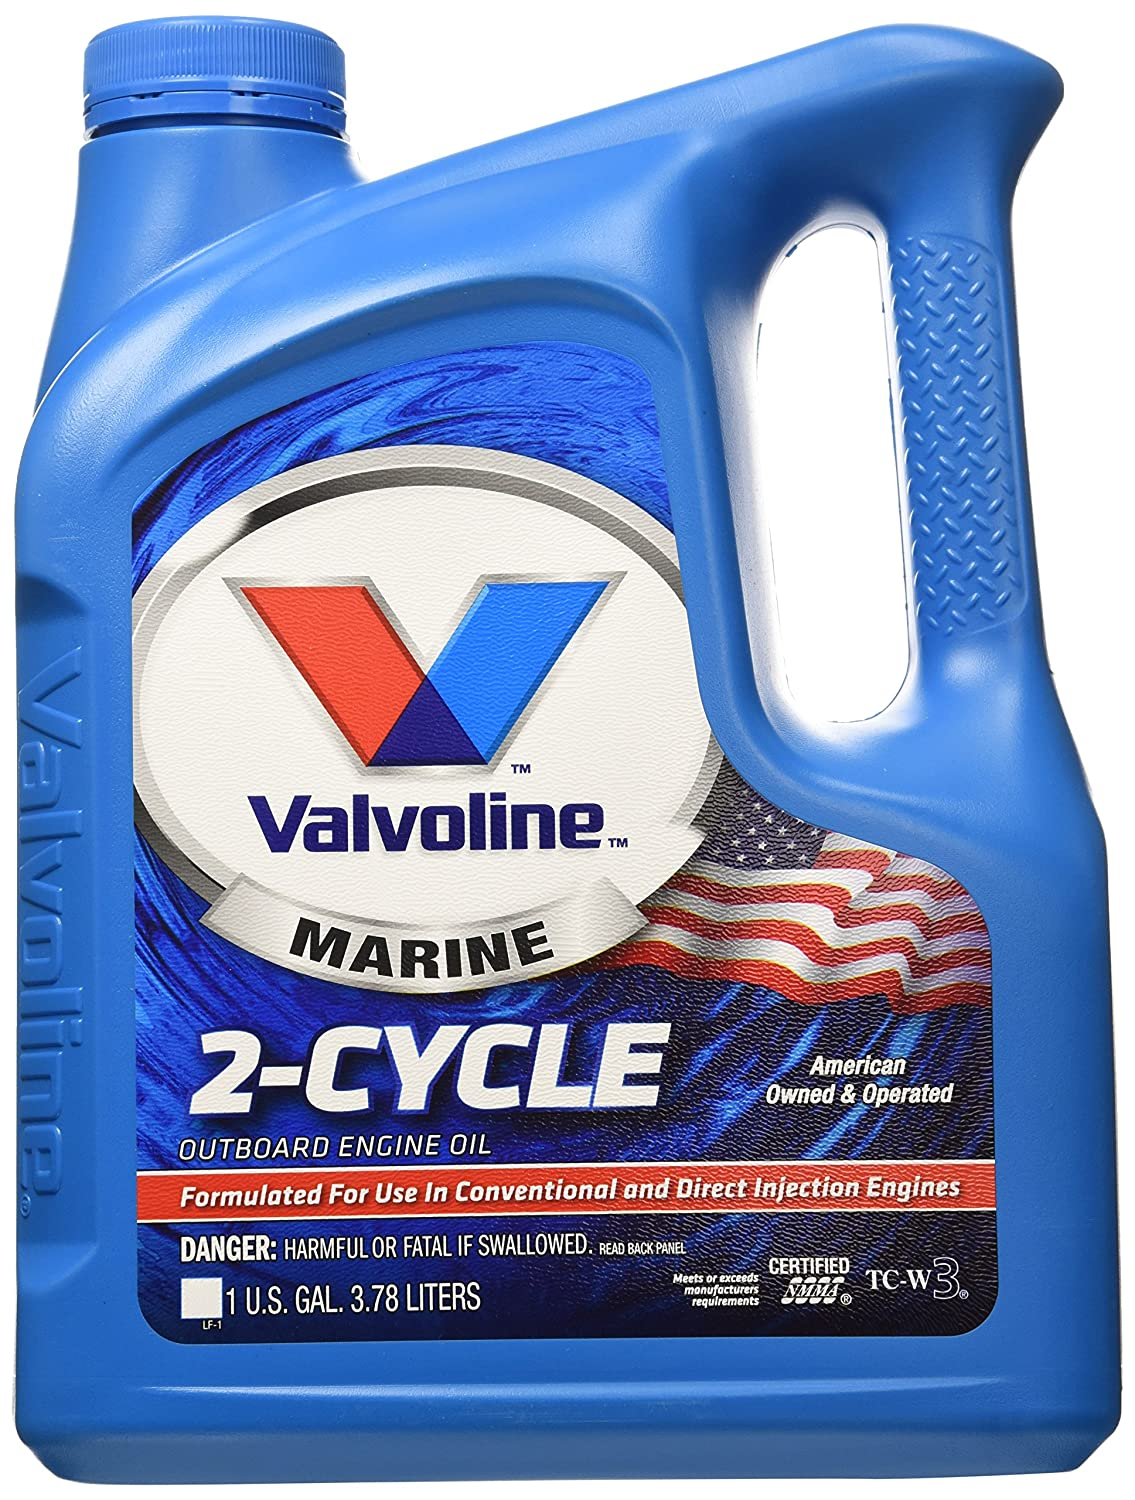 Valvoline 2 Cycle TC-W3 Outboard Marine Oil - 1gal (773735)